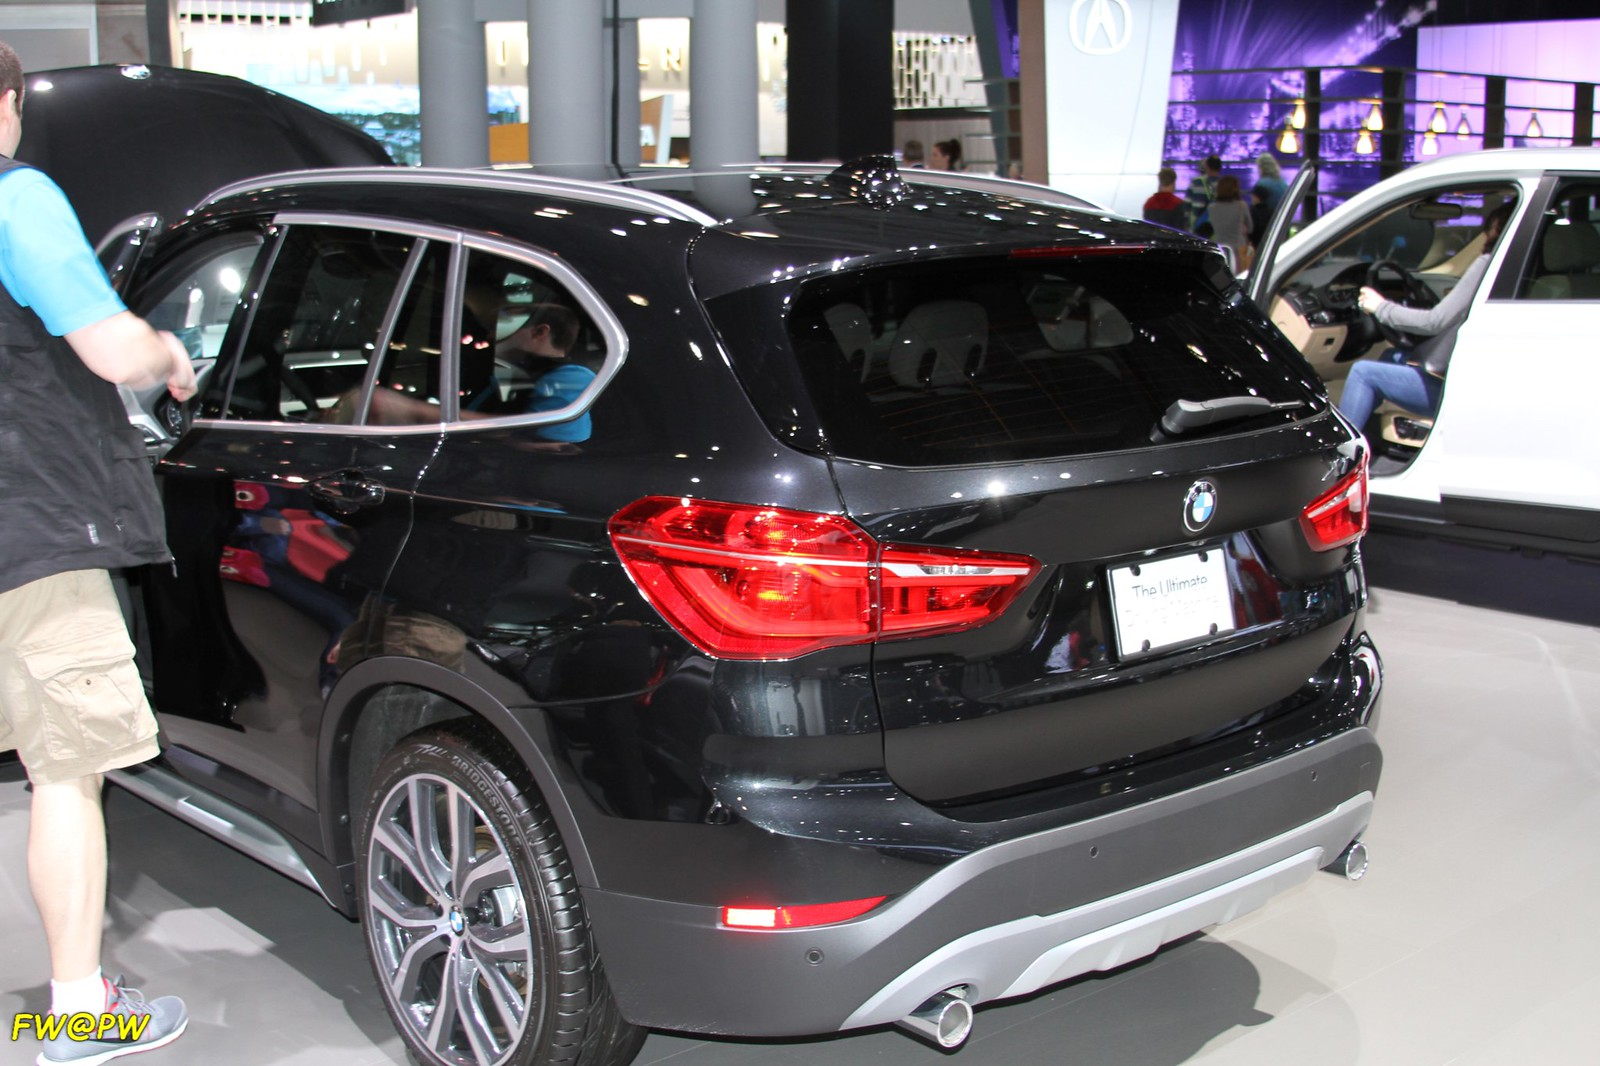 BMW X1 Launched in Pakistan. - 26412656023 375a03fc01 h